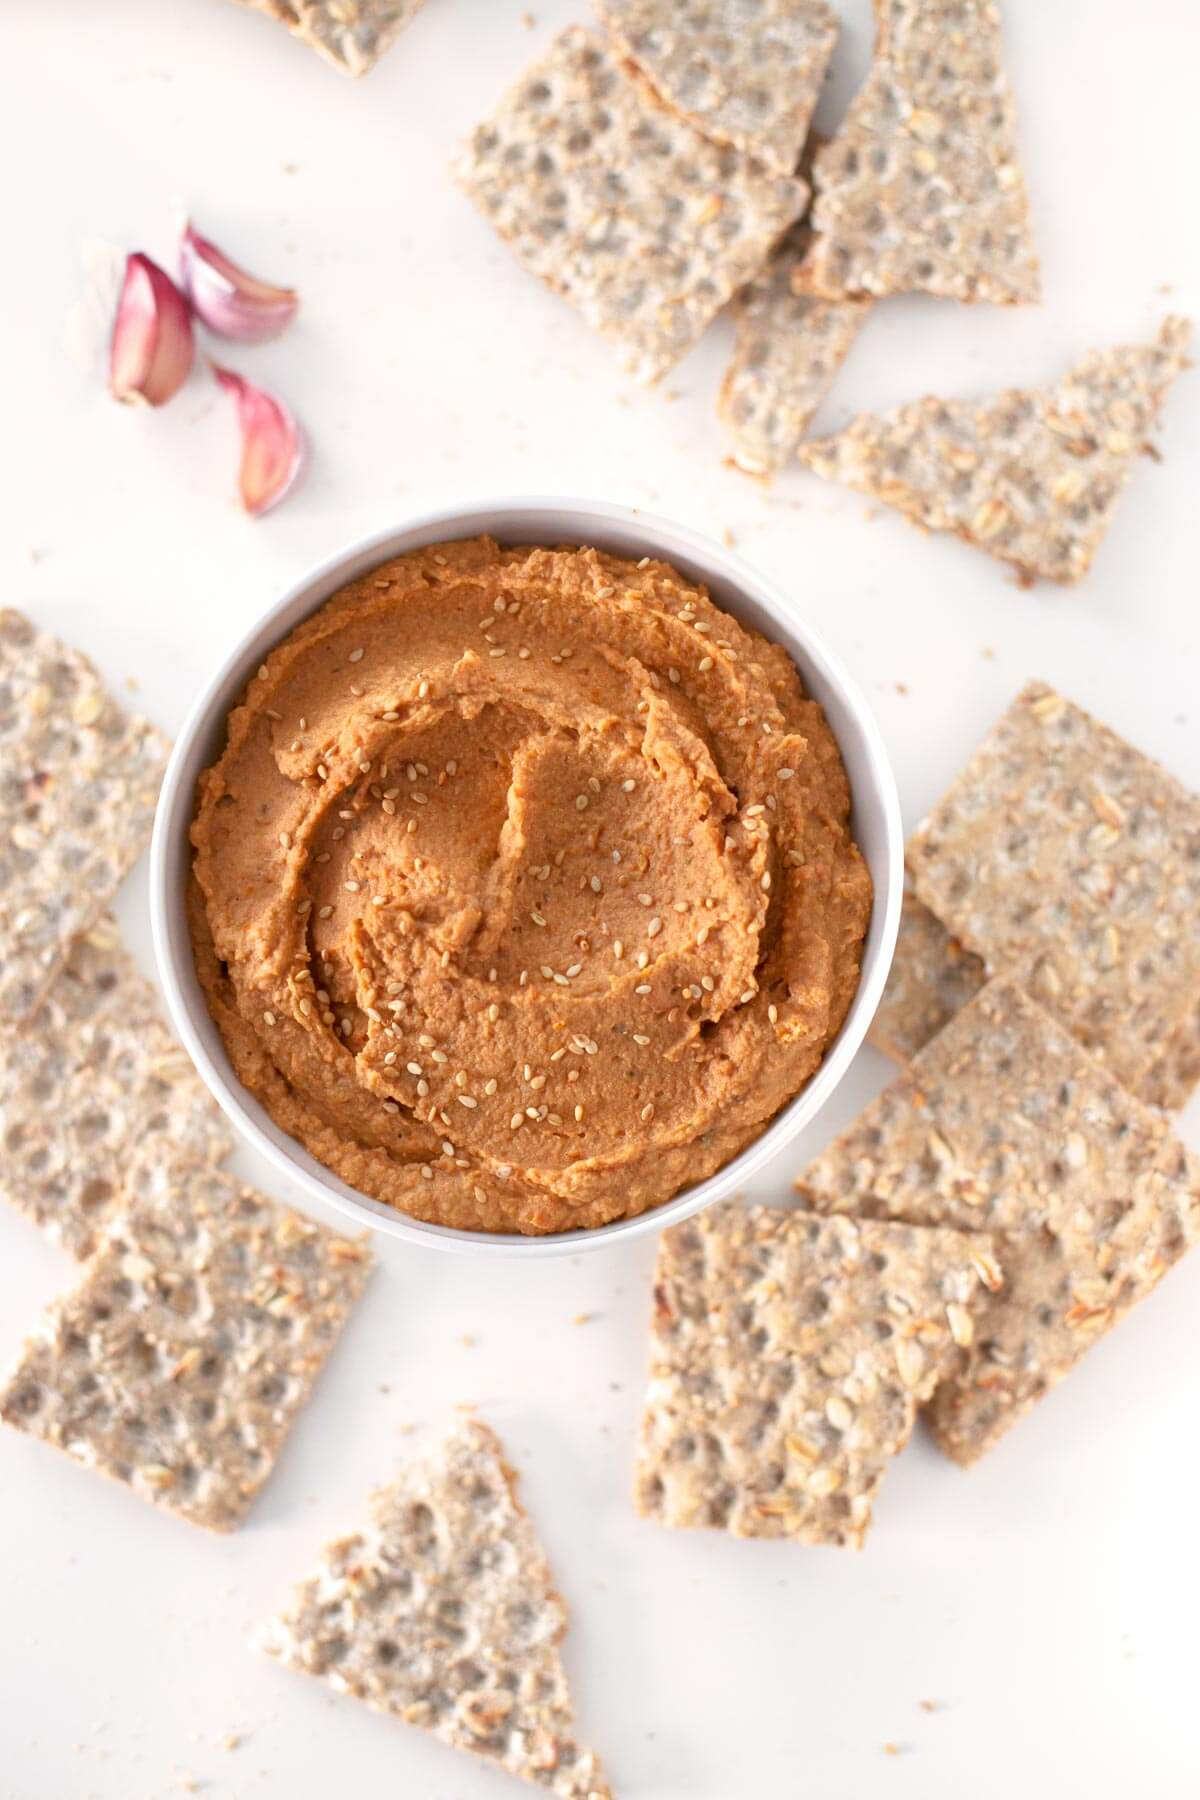 Lentil Pate. - This lentil pâté is perfect for breakfast, to make sandwiches or as a garnish or snack with bread, crudités or nachos.